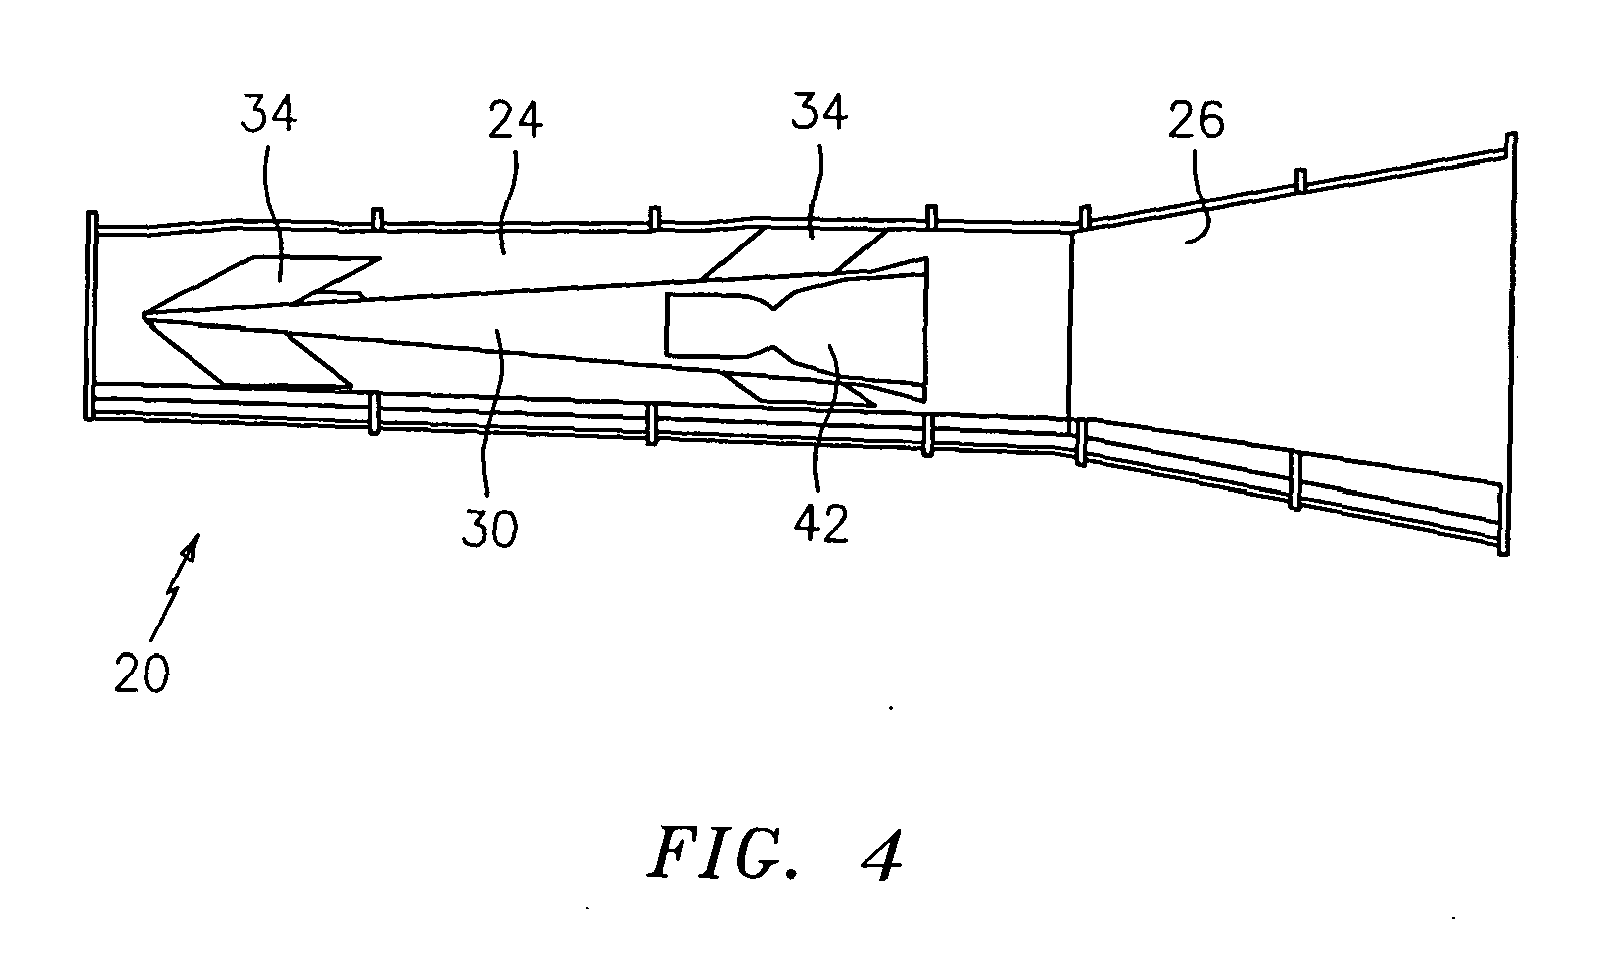 Scramjet/ramjet engine with annular isolator - Patent 1916407